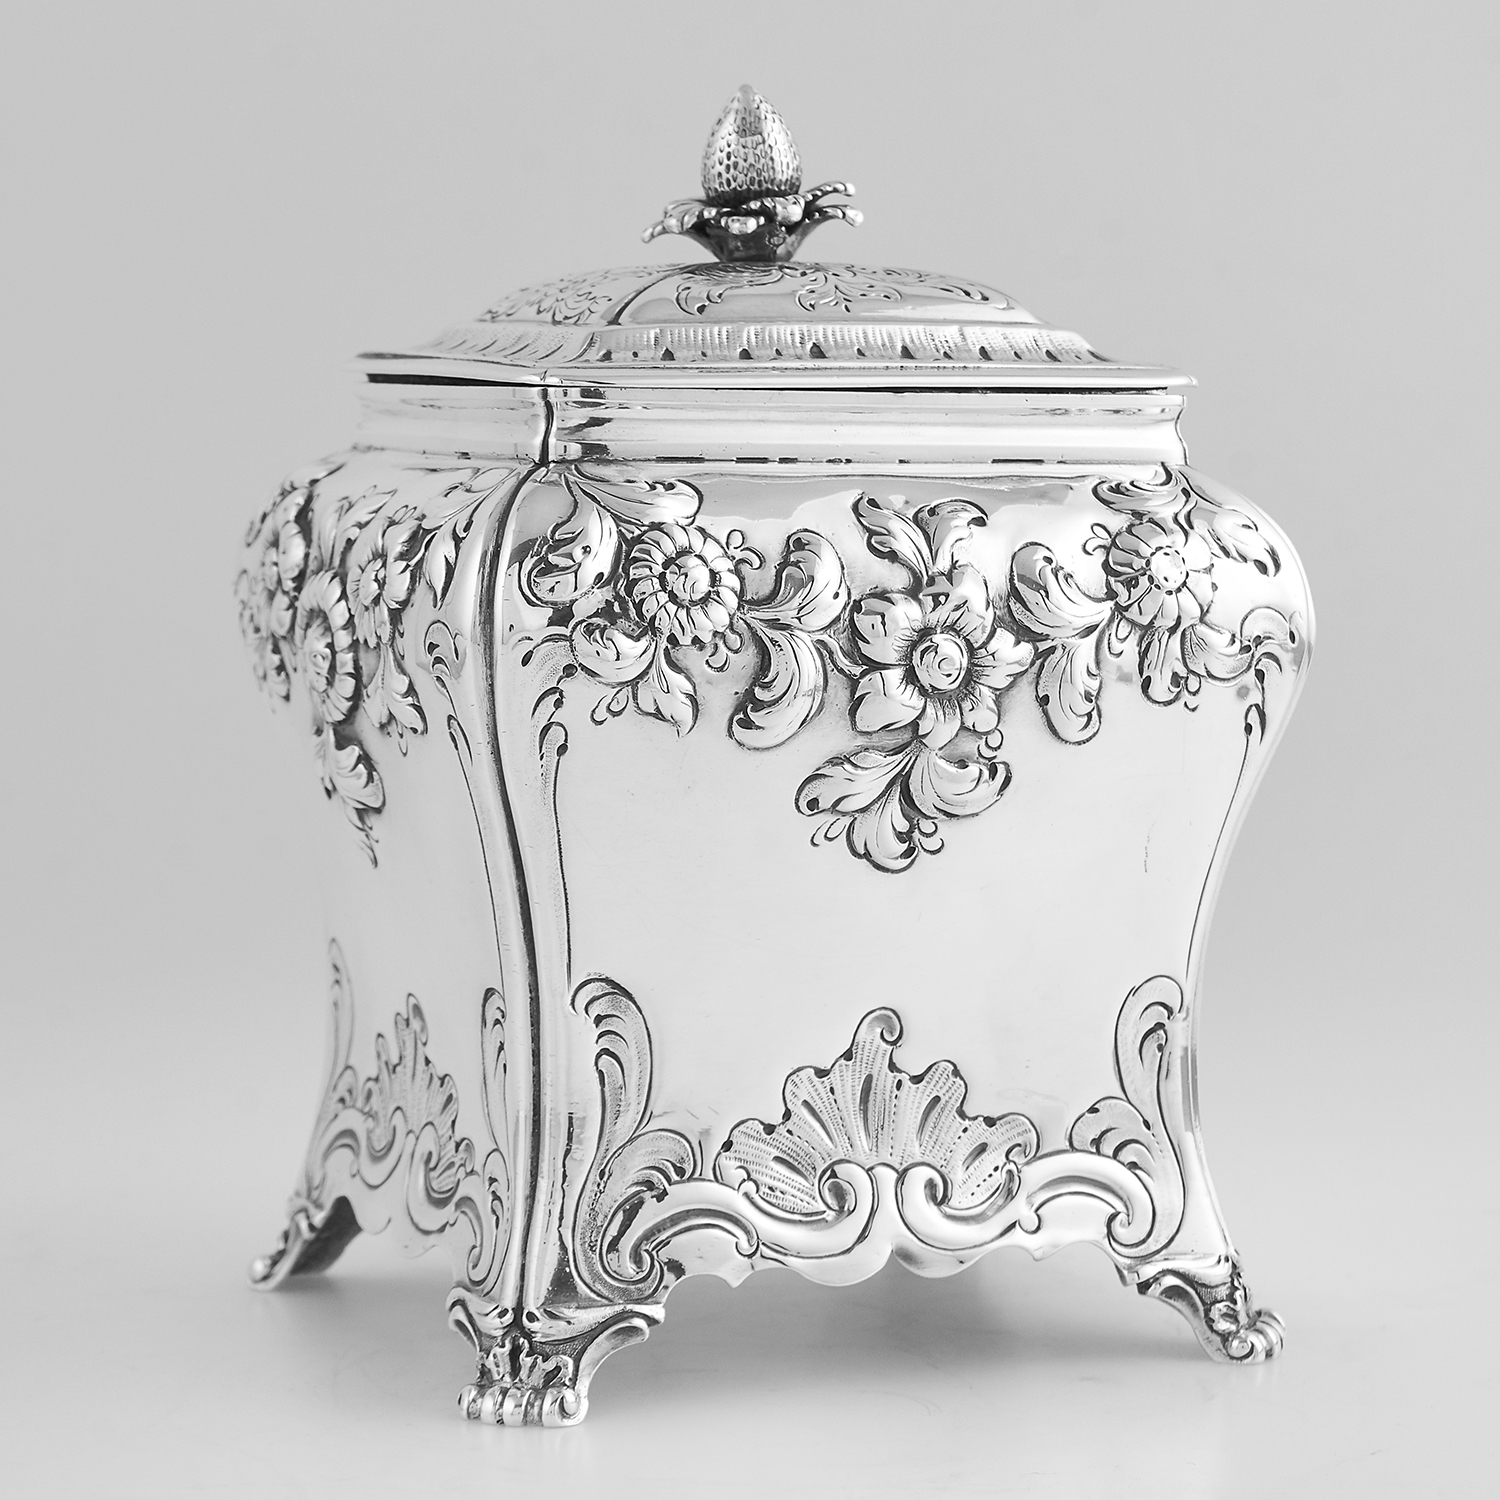 Los 72 - ANTIQUE GEORGE III STERLING SILVER SUGAR BOX, PIERRE GILLOIS LONDON 1761 the bevelled rectangular